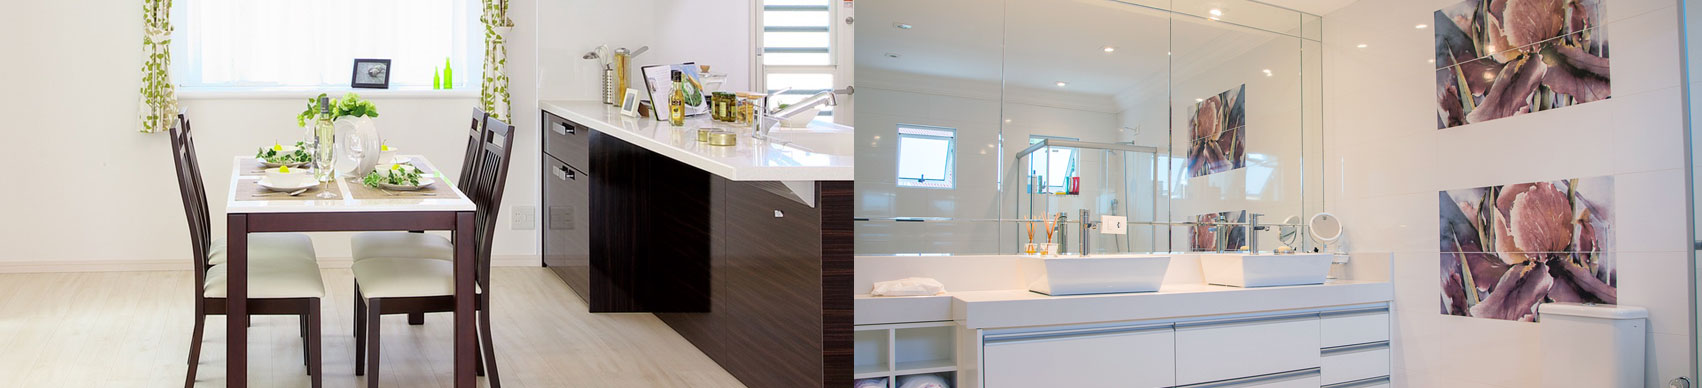 Bathroom & Kitchen Renovations